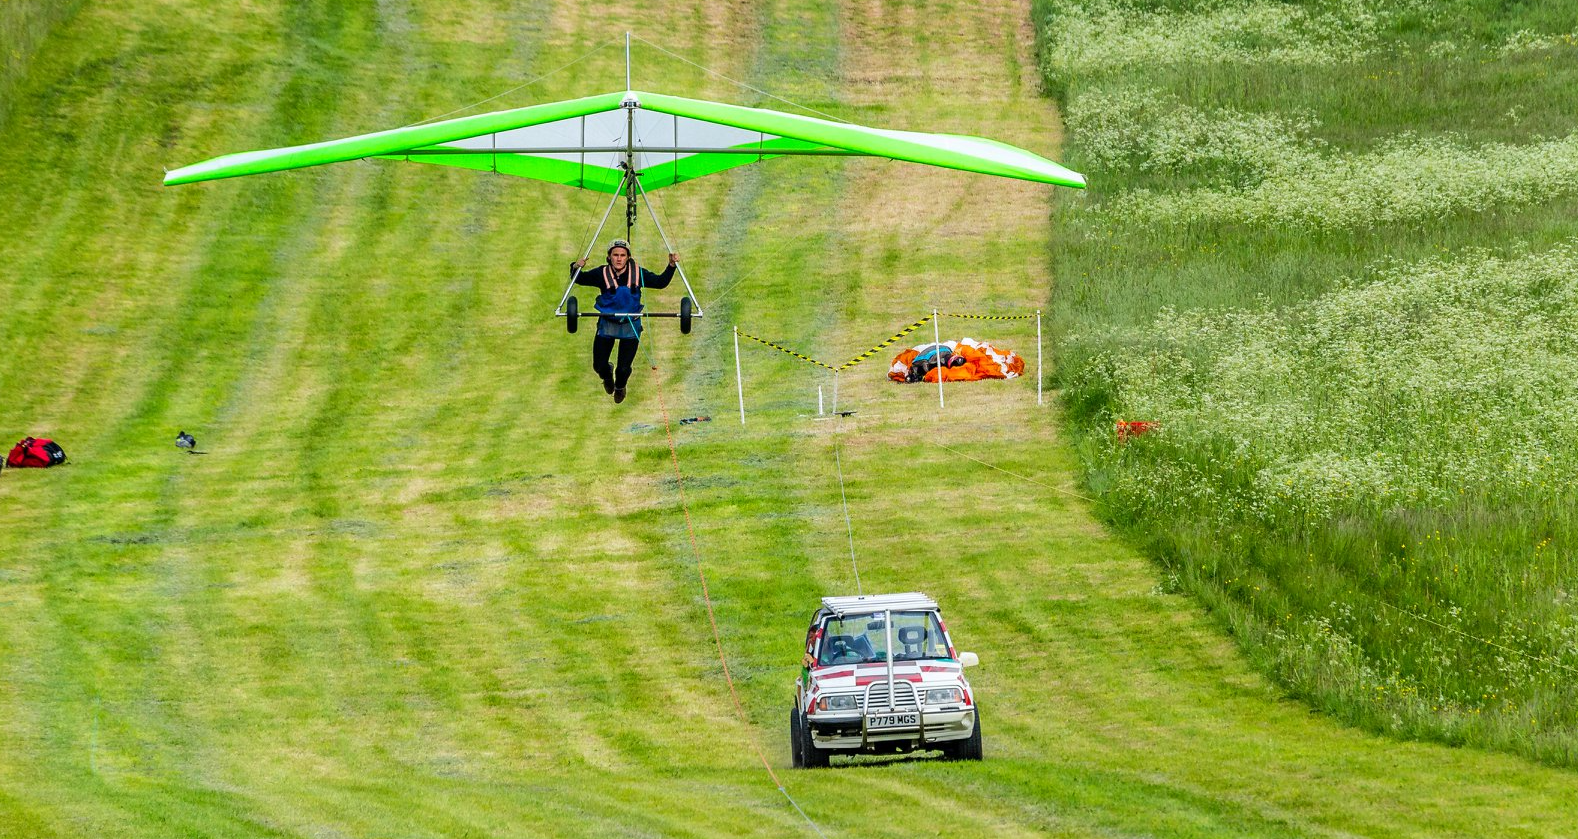 BHPA Hang glider training with Green dragons